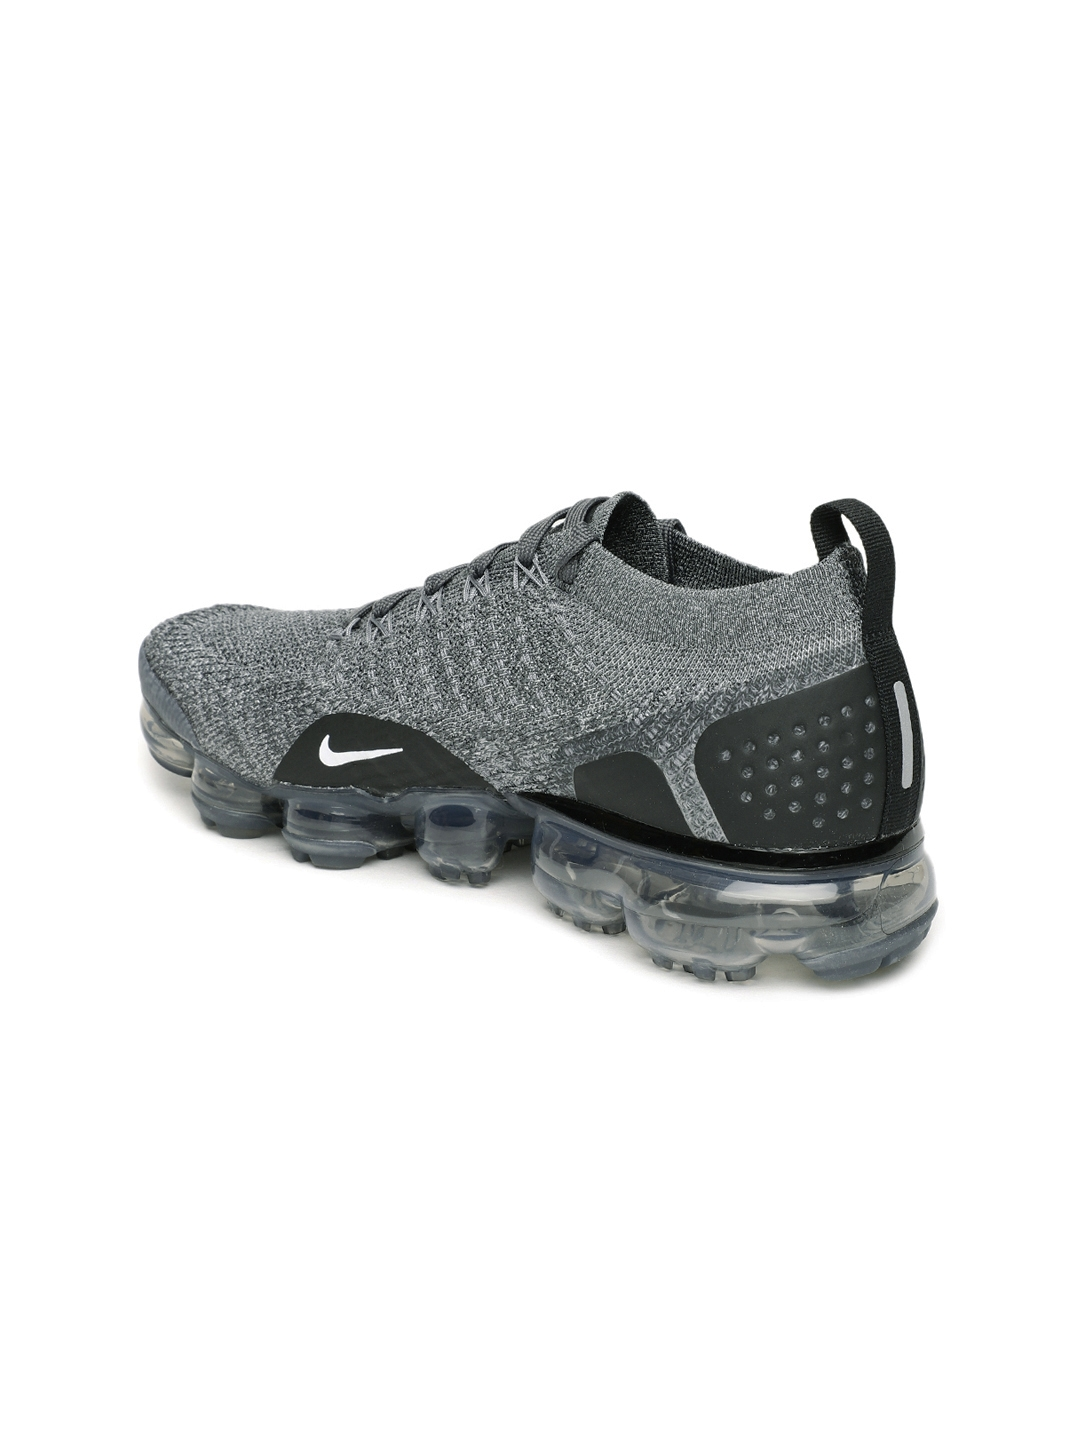 4f98ccc1f4cb4 Buy Nike Women Grey AIR VAPORMAX FLYKNIT 2 Running Shoes - Sports ...